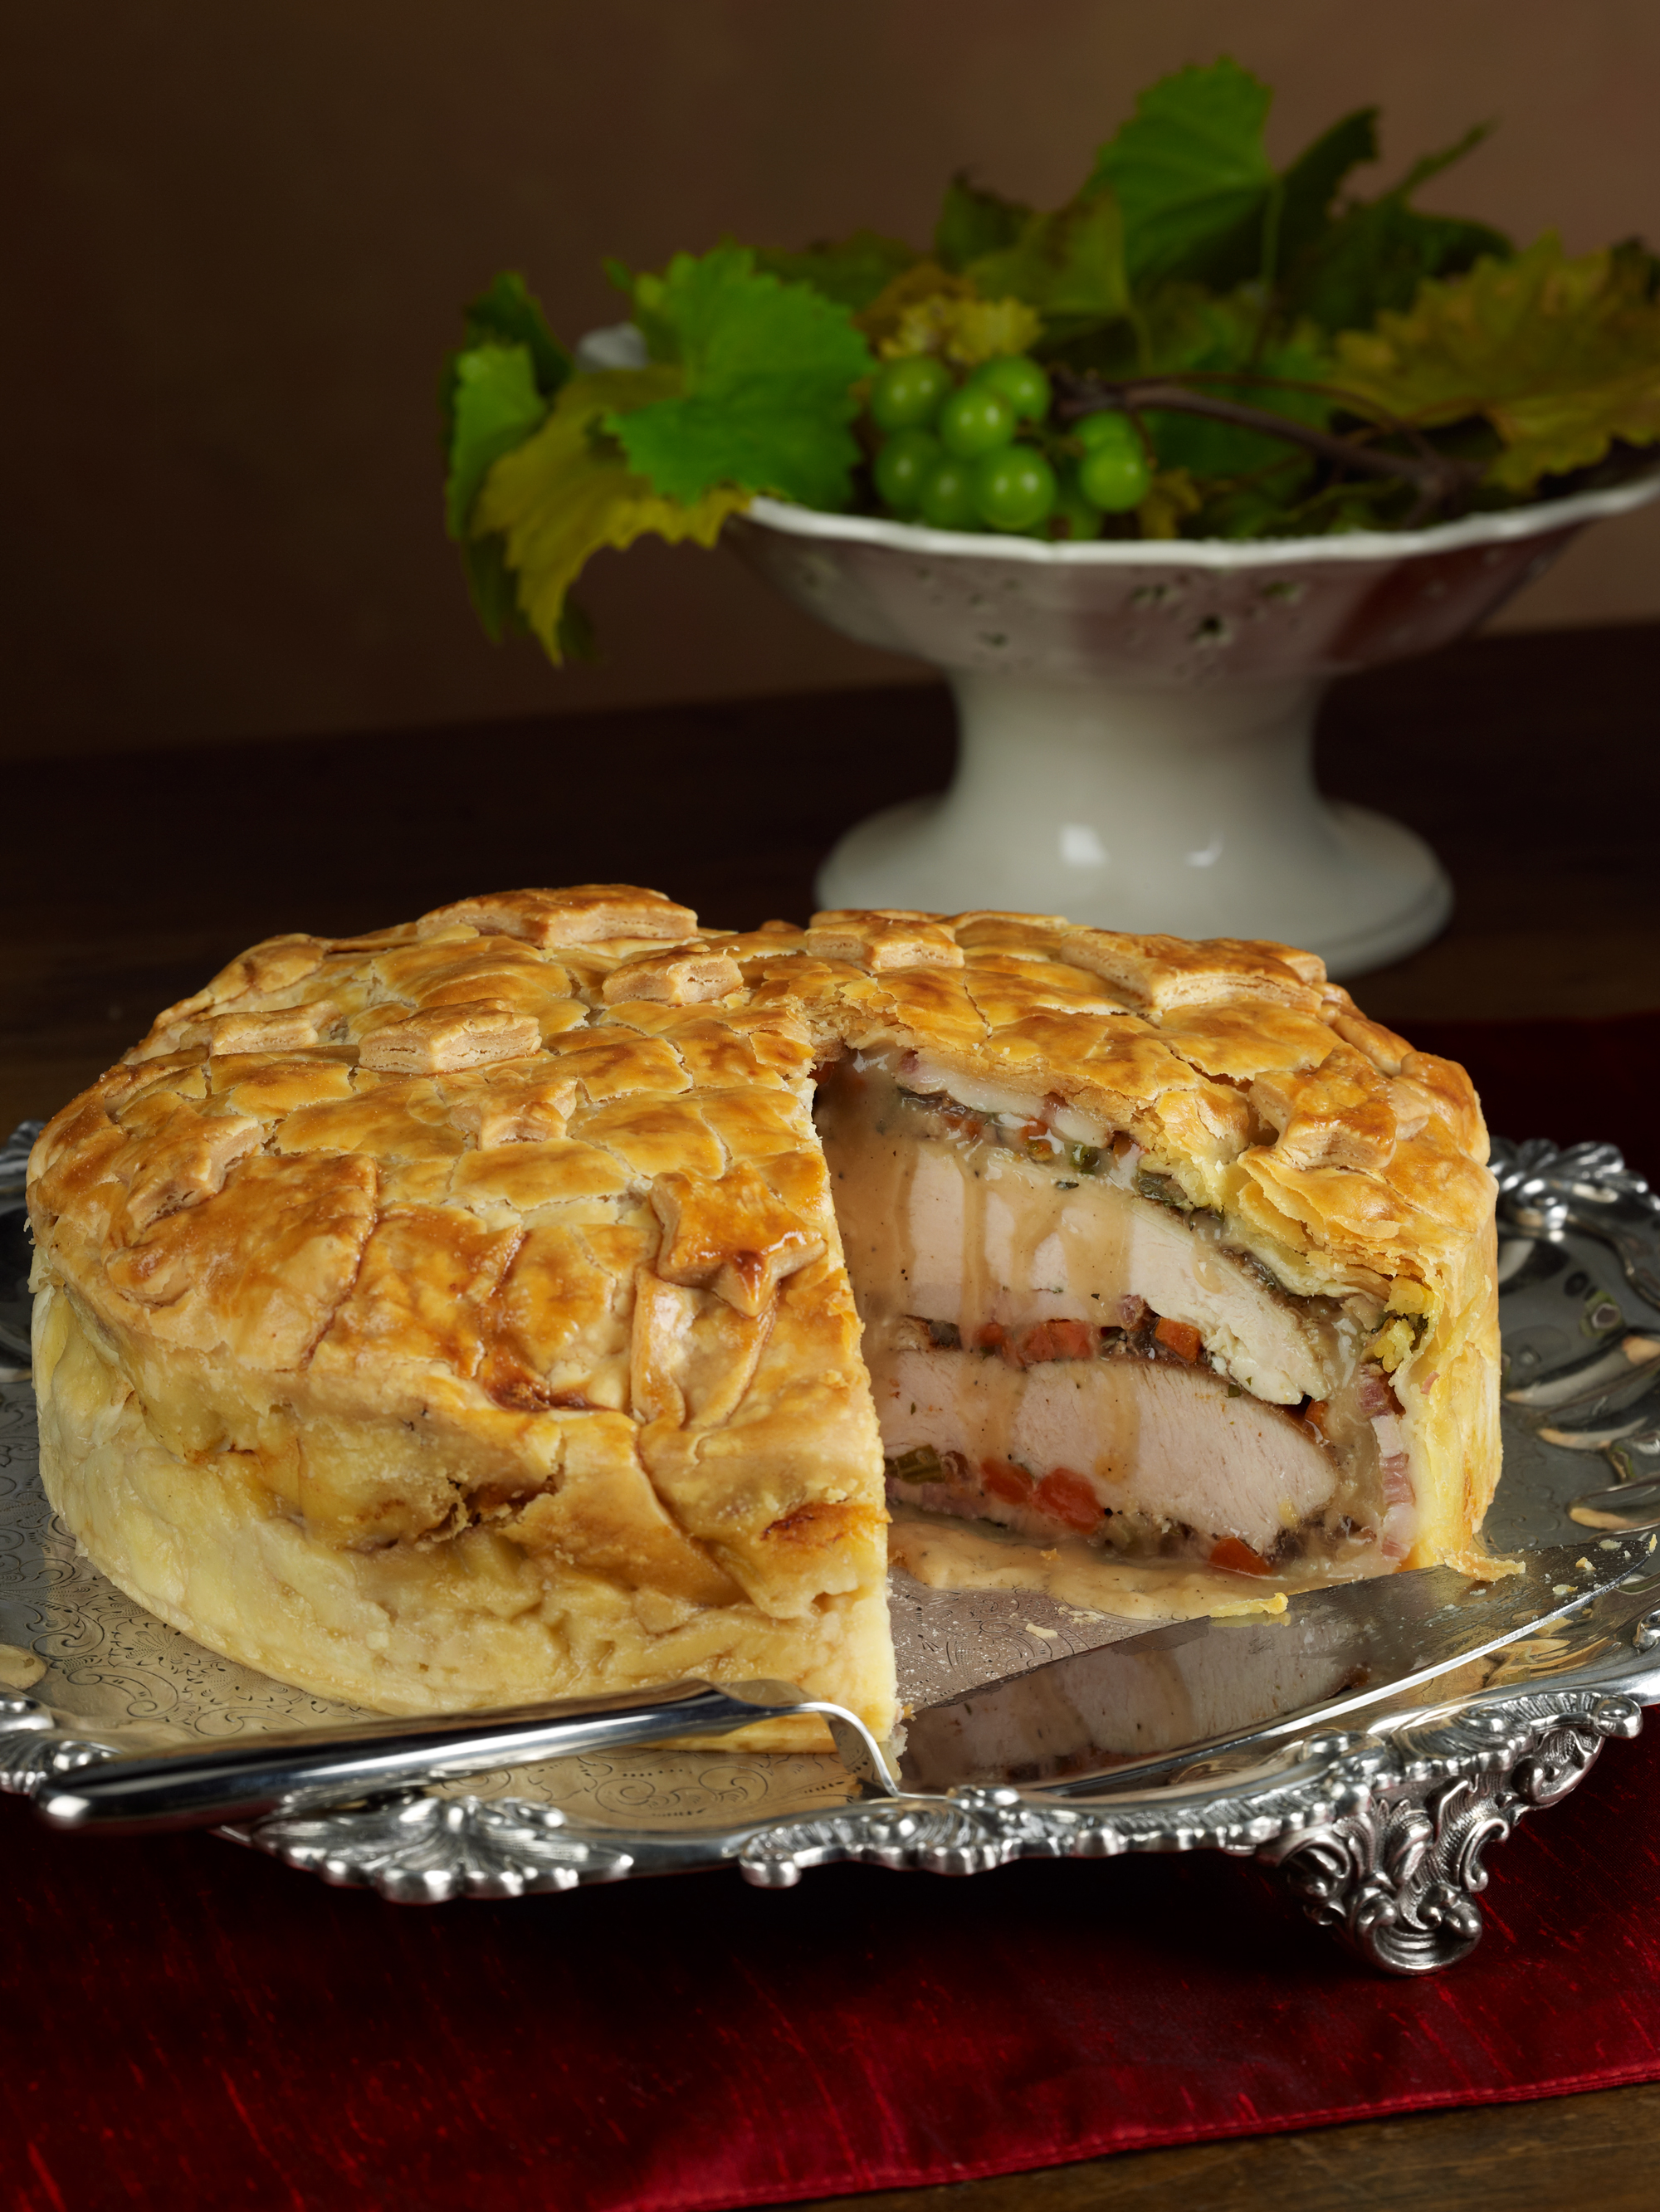 food photography by rene comet styled by lisa cherkasky - Christmas Pies